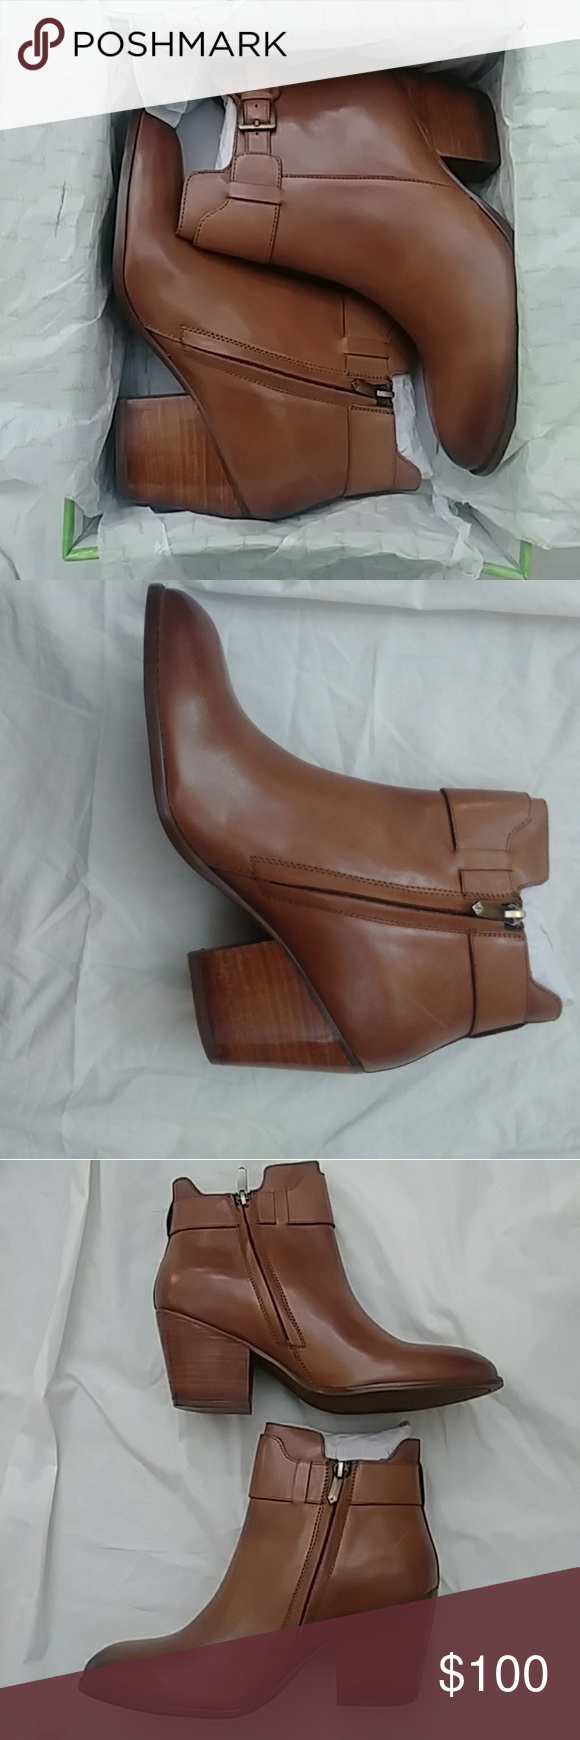 bb855558b9676 Women s Sam Edelman Ankle Boots Size 8.5 Brand New. Melody Cognac Leather Ankle  Boots. Size 8.5 Sam Edelman Shoes Ankle Boots   Booties